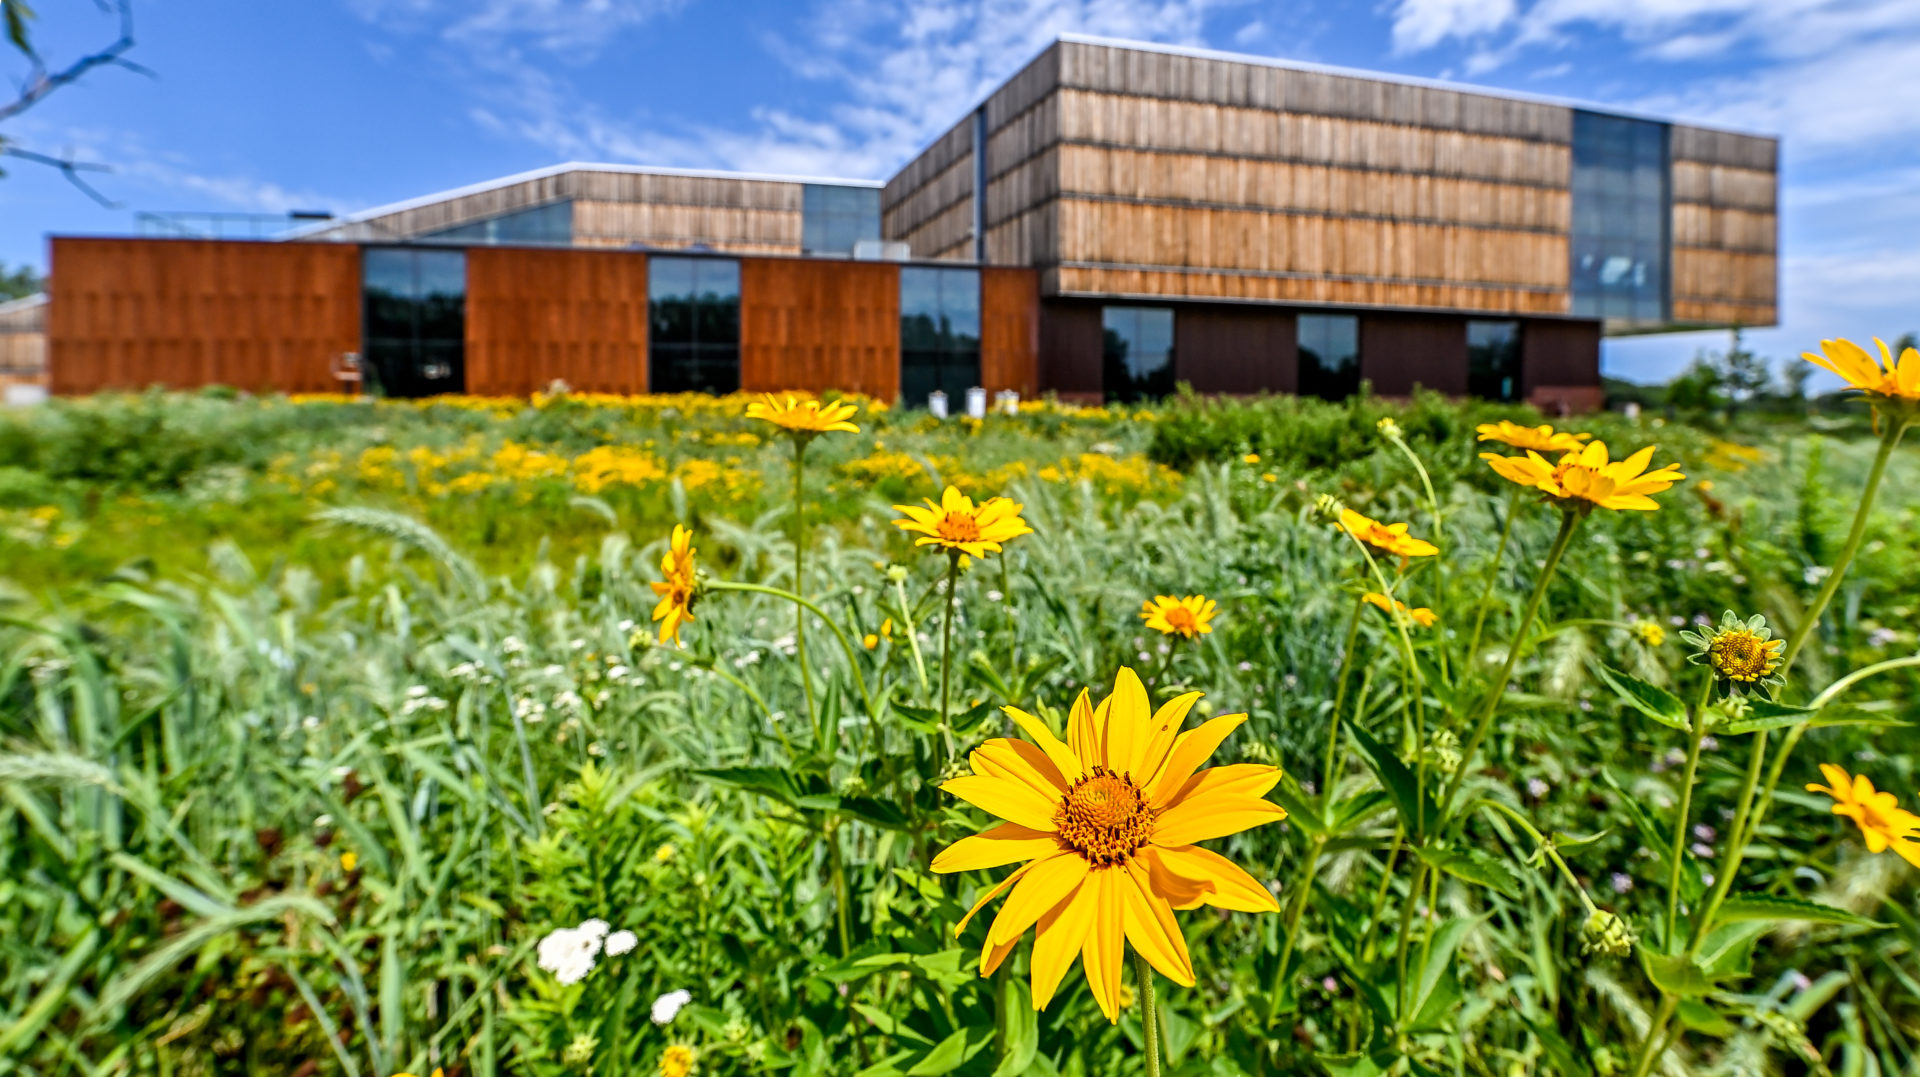 exterior summer image of the Bell Museum and its learning landscape